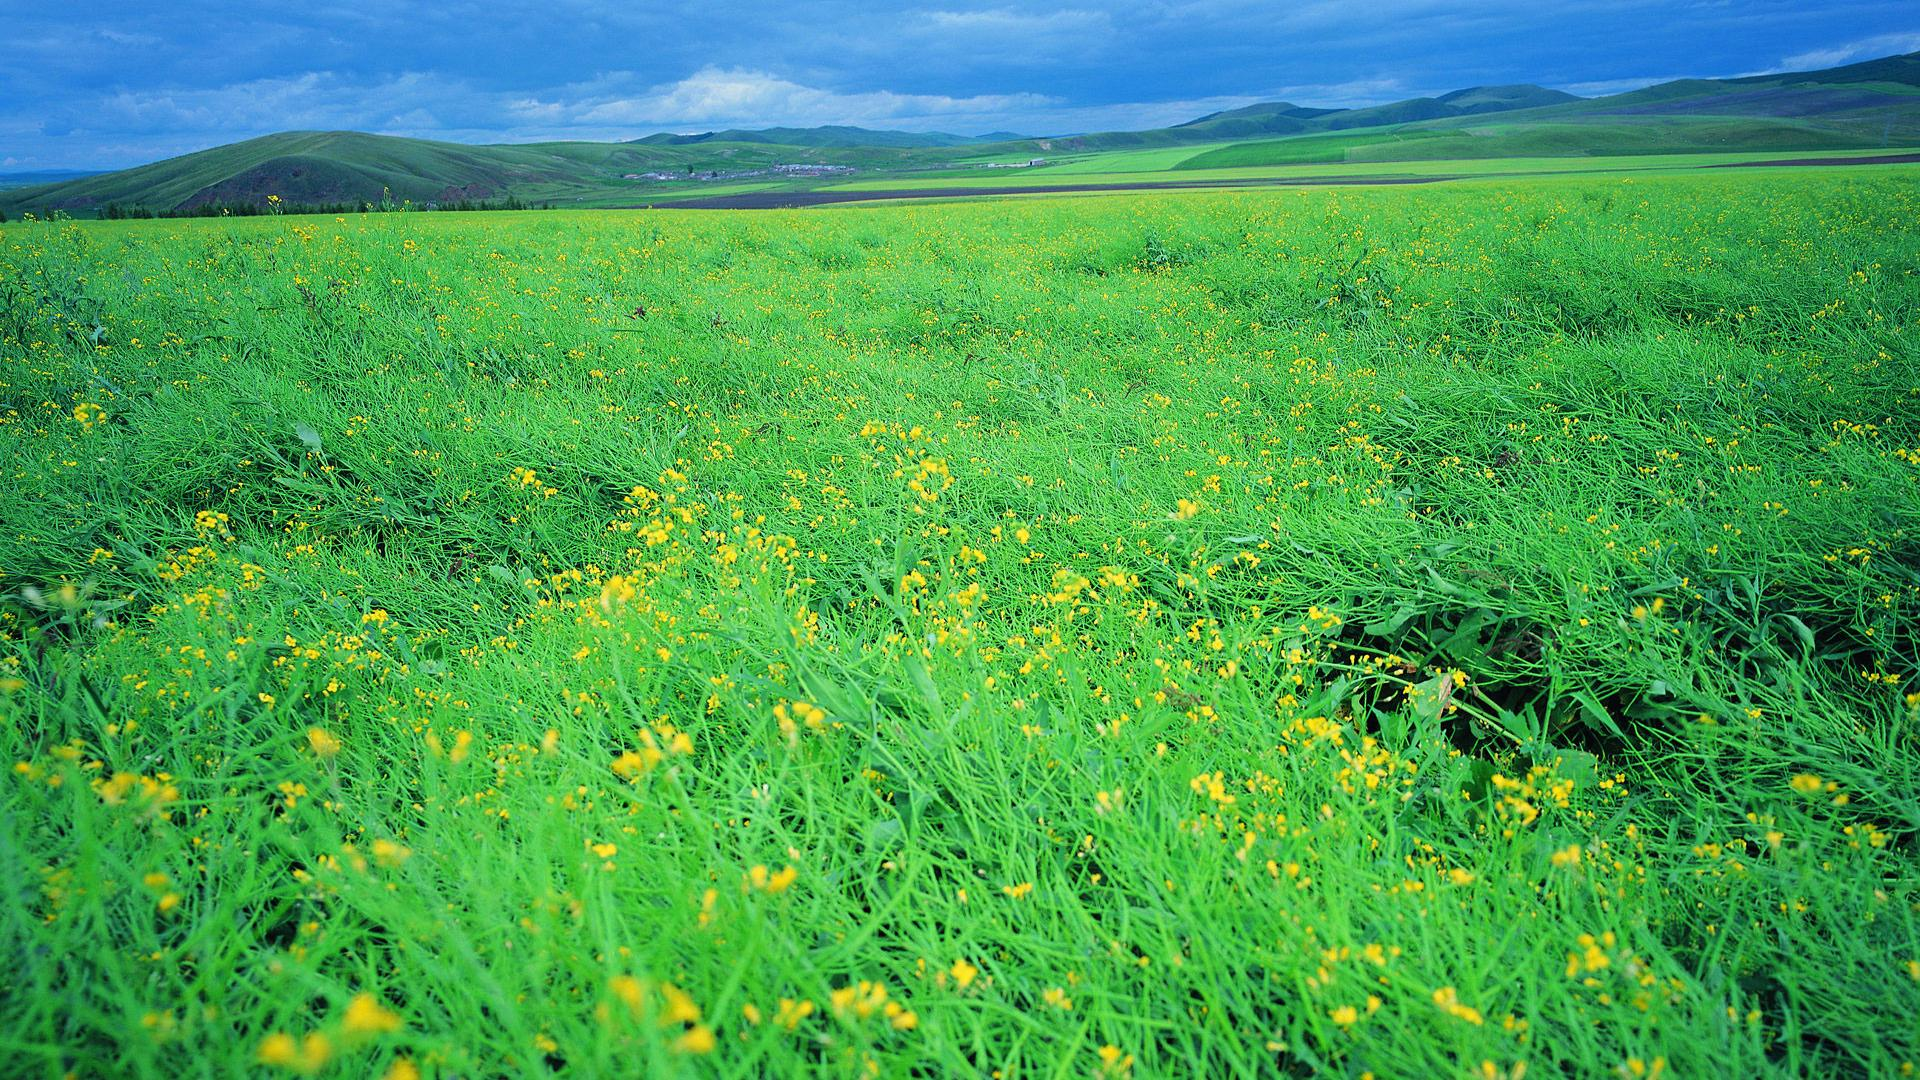 ... Grassland Scenery Background Widescreen and HD background Wallpaper